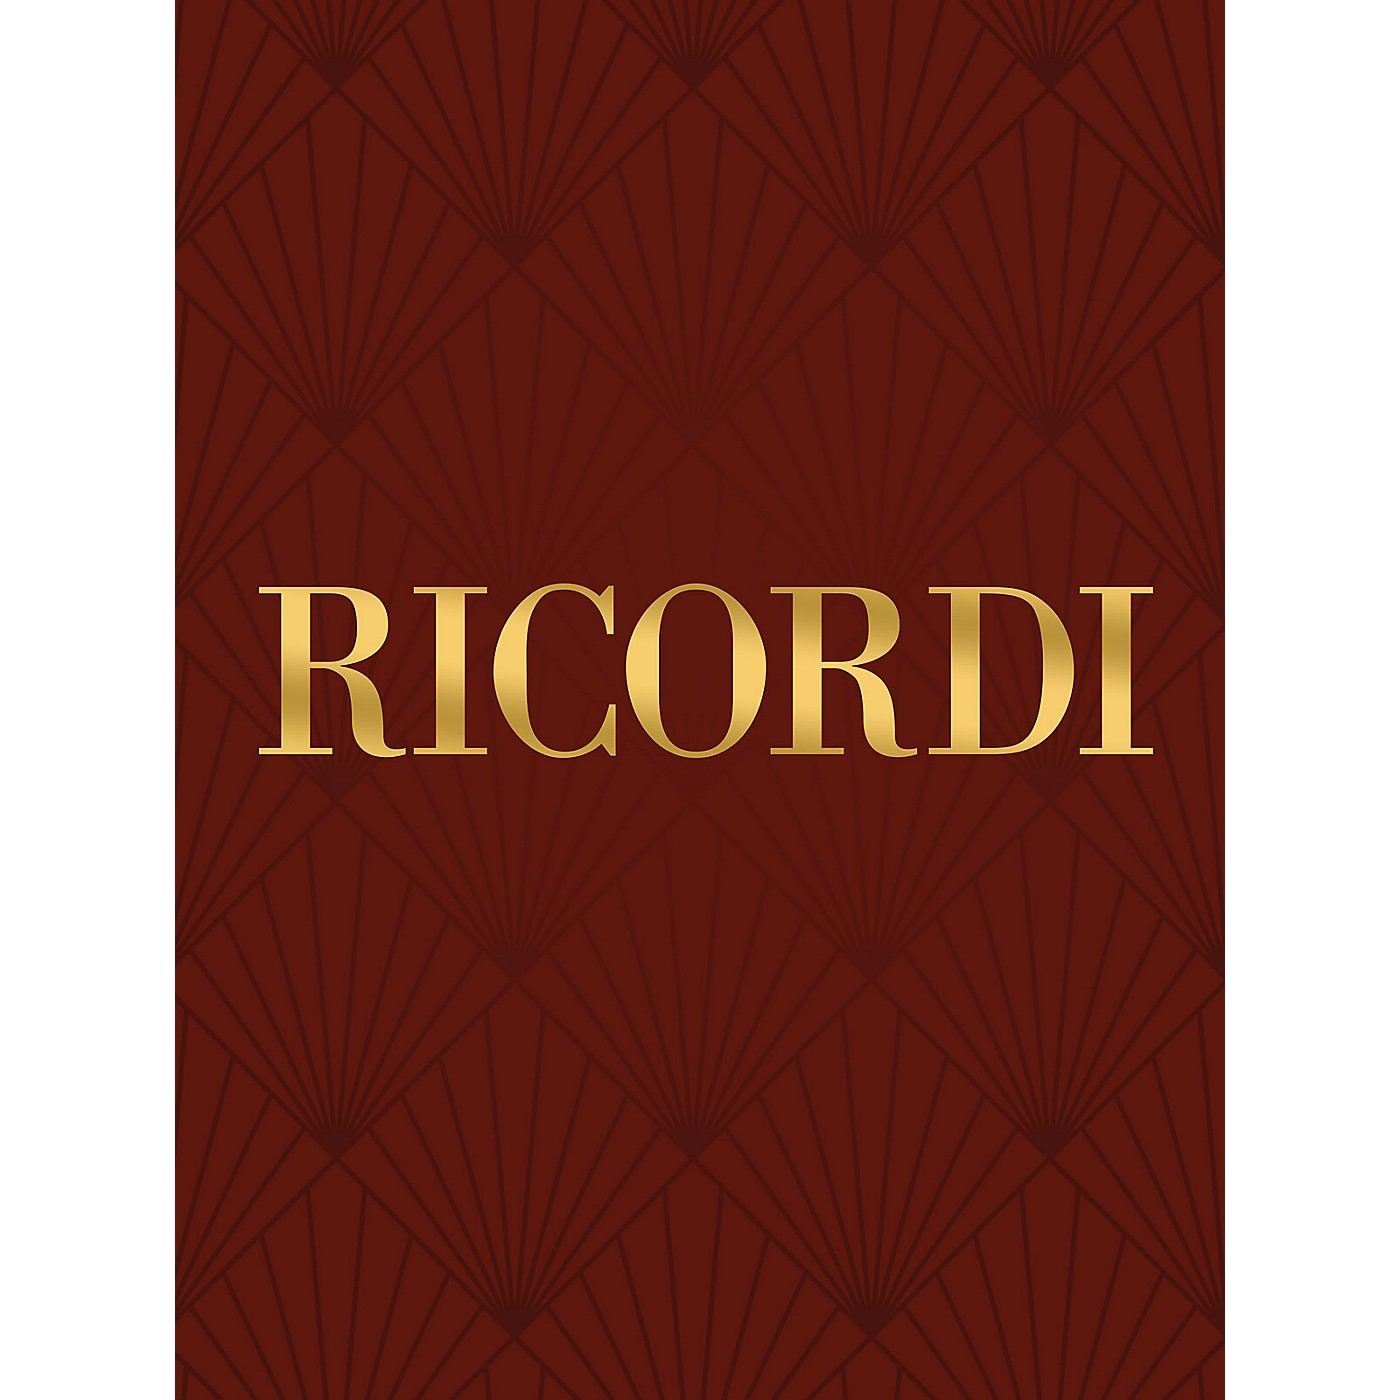 Ricordi Difficult Passages and Solos - Volume I (Flute Solo) Woodwind Method Series Composed by B Torchio thumbnail